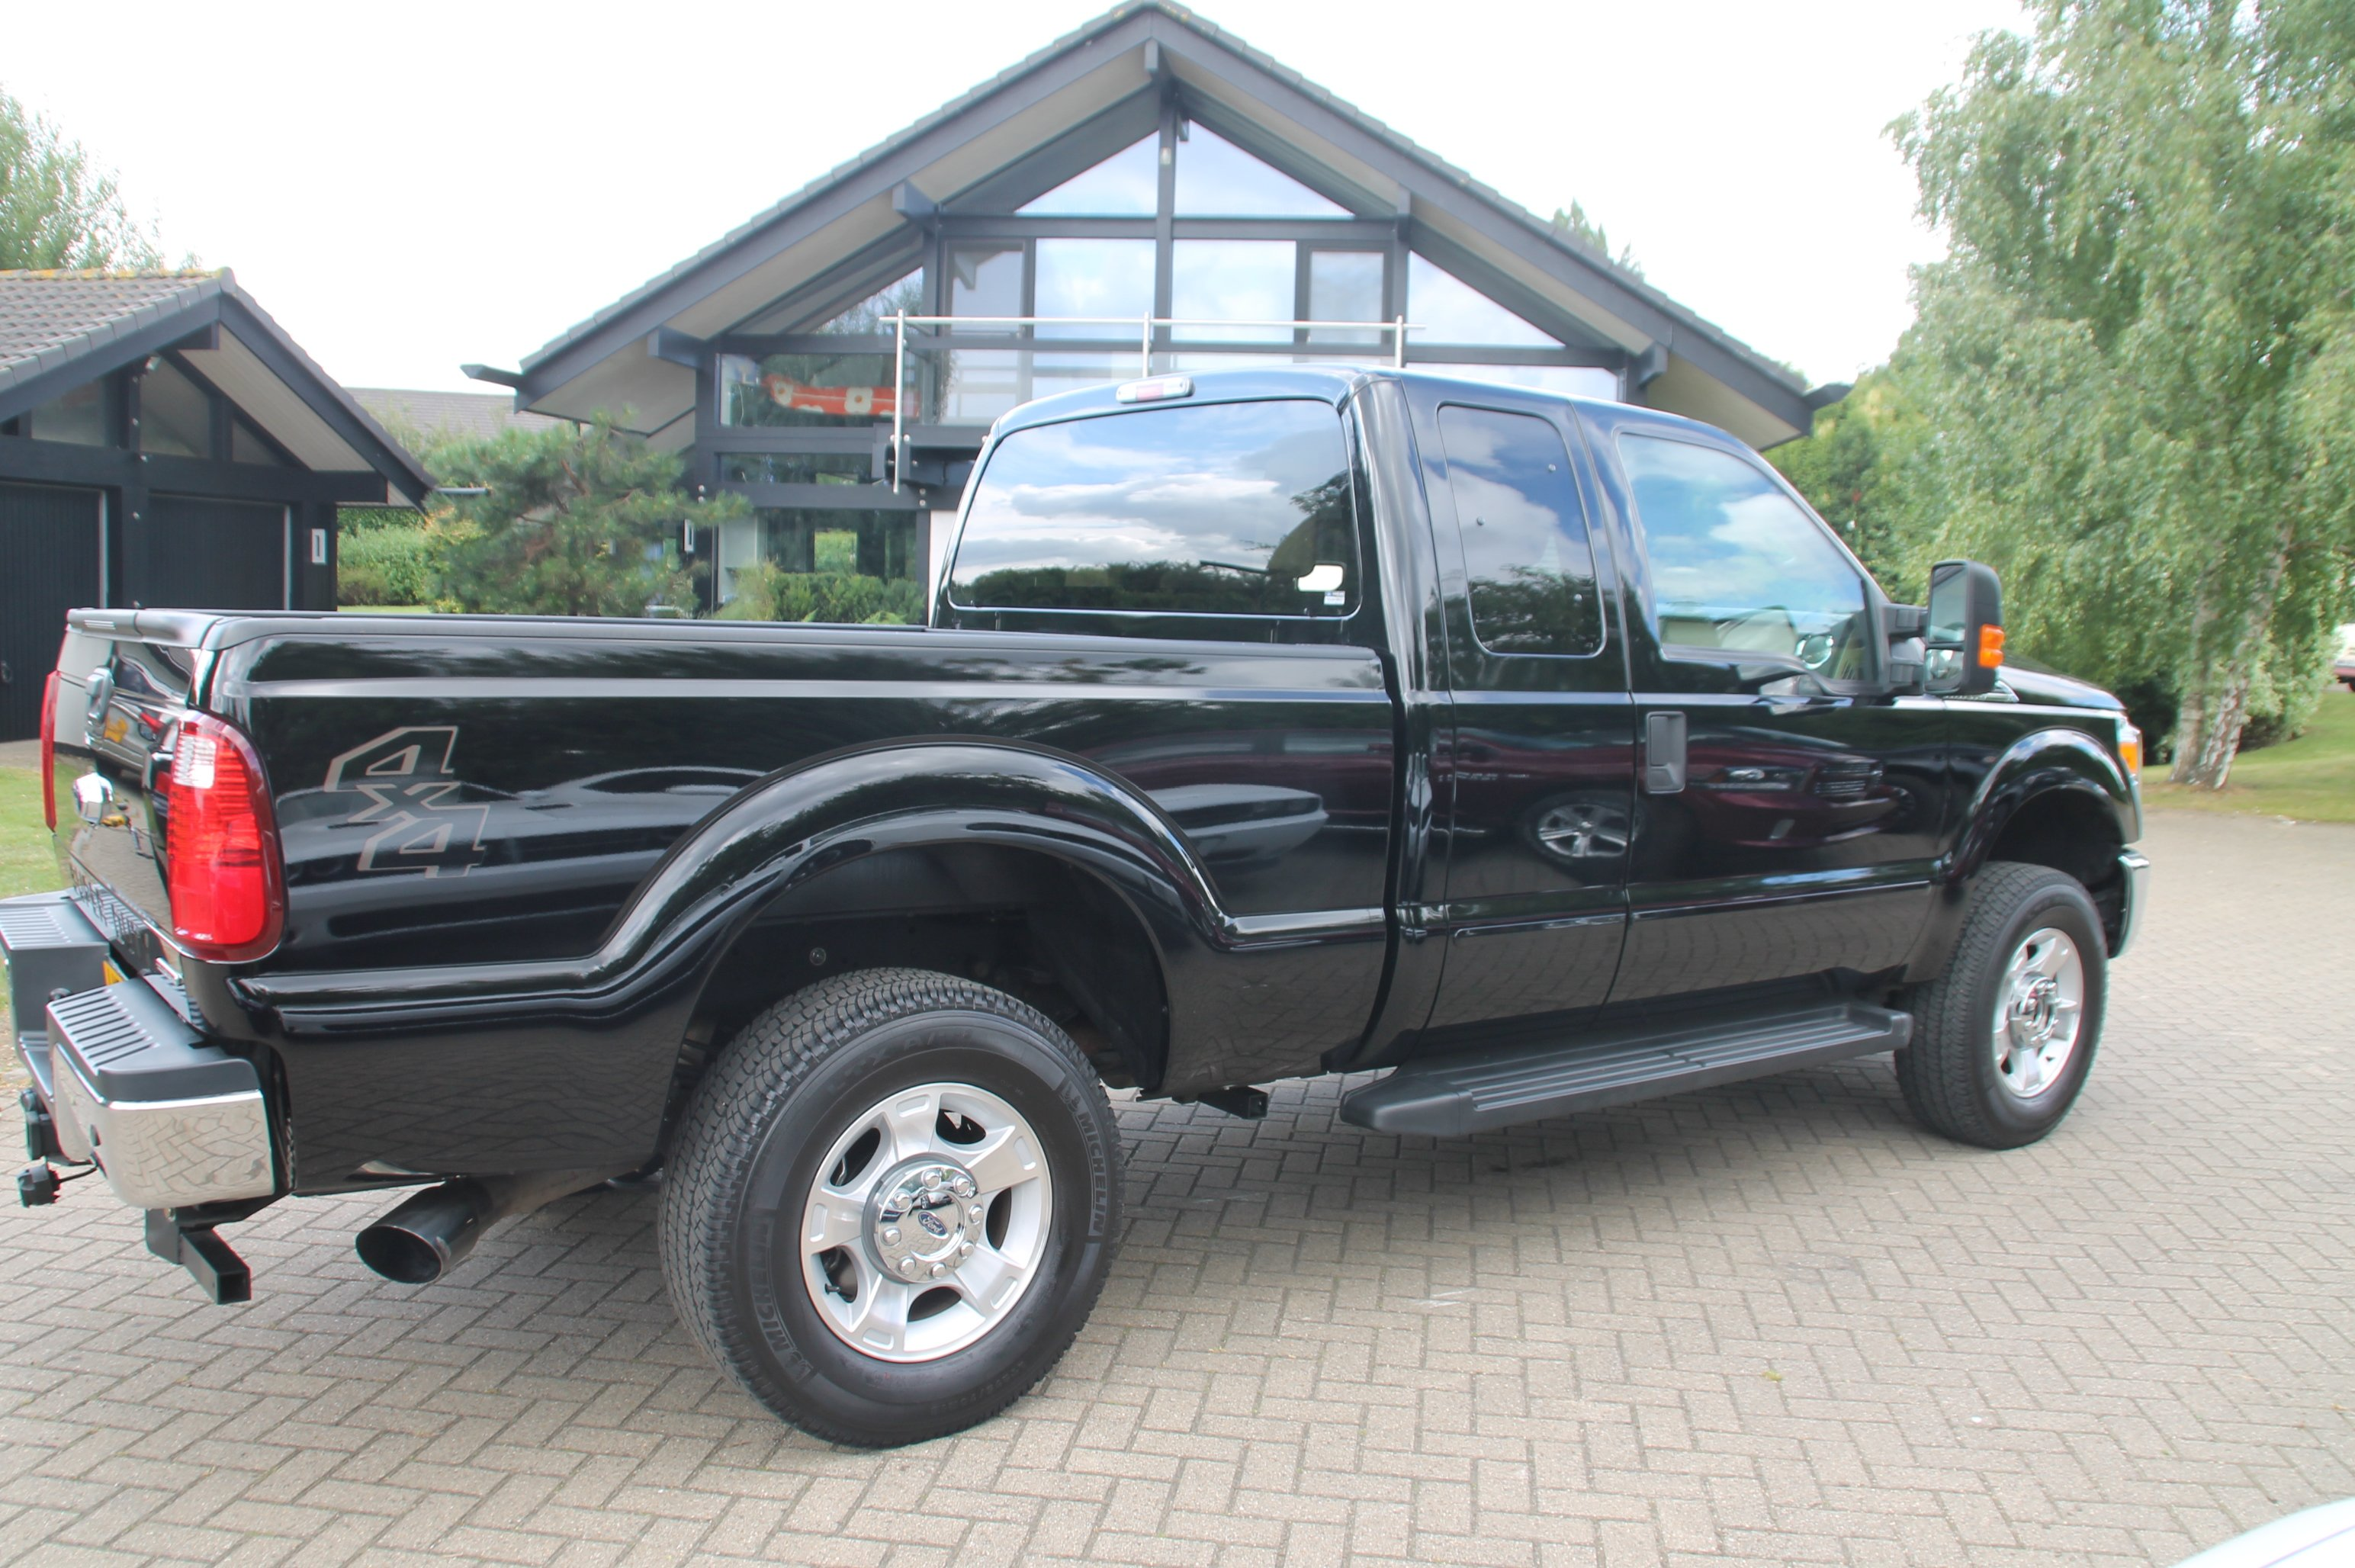 2016 ford f250 xlt supercab ford pickup truck 51st state autos. Black Bedroom Furniture Sets. Home Design Ideas